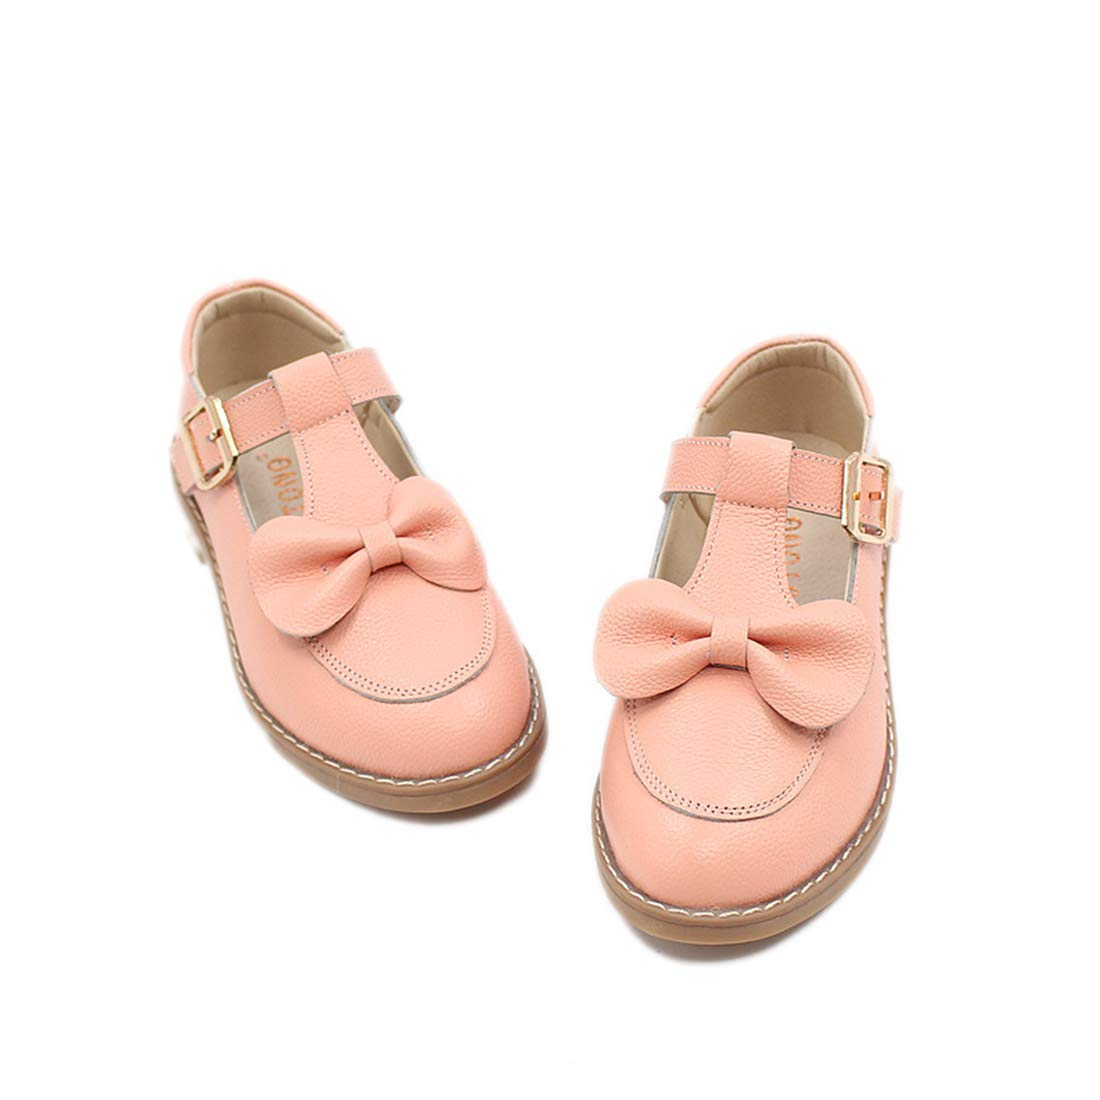 YIBLBOX Toddler Girls Mary Jane School Uniform Shoes with Bow